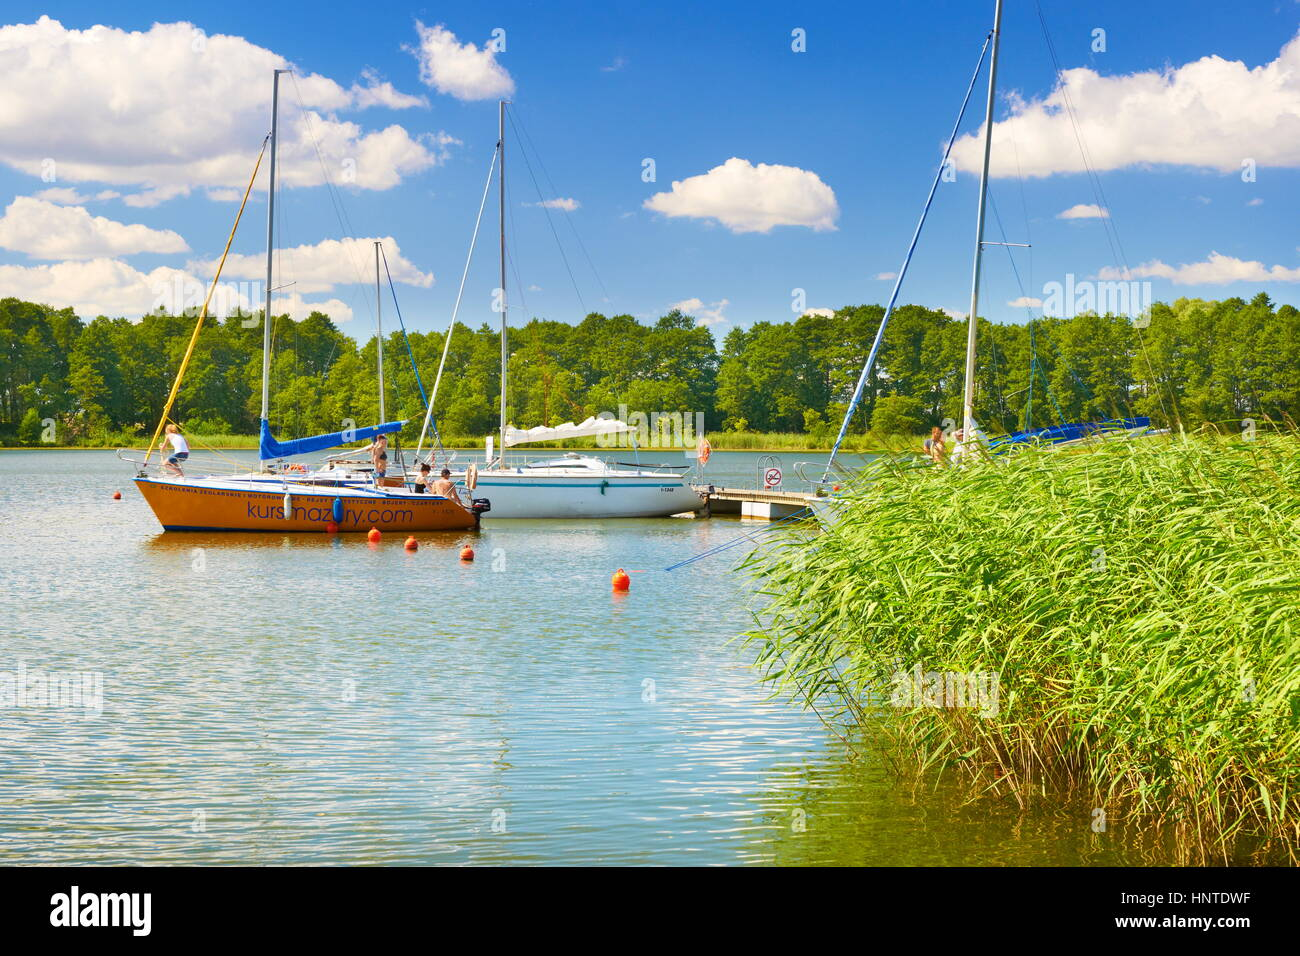 Voiliers à Sztynort Lake, région de la Mazurie, Pologne, Europe Photo Stock